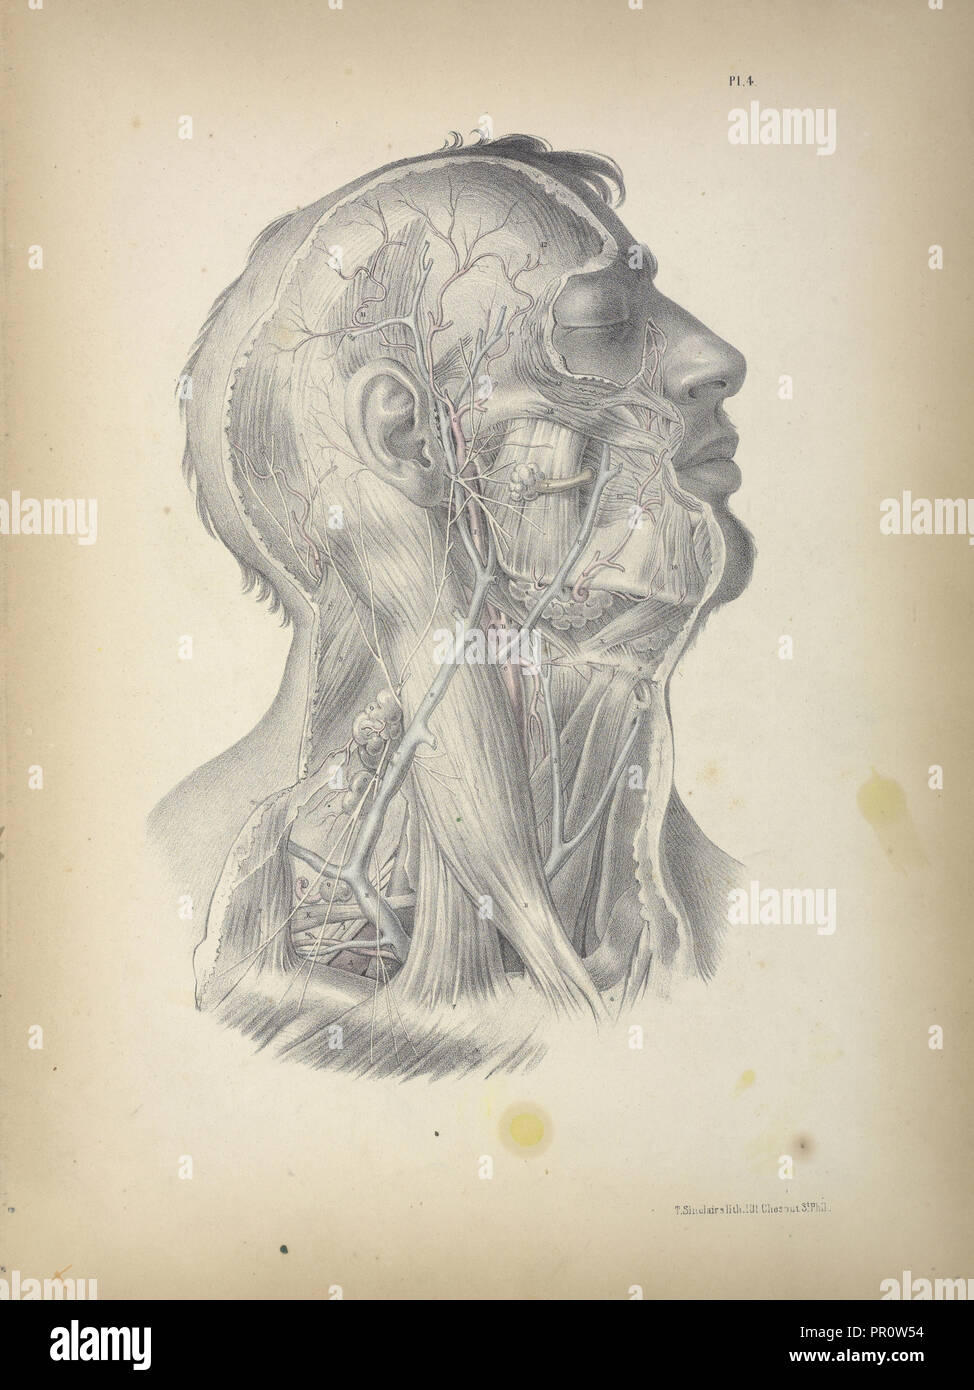 Pl. 4, Surgical anatomy, Maclise, Joseph, Lithography, 1851, Colored lithograph. Maclise is the author and illustrator - Stock Image